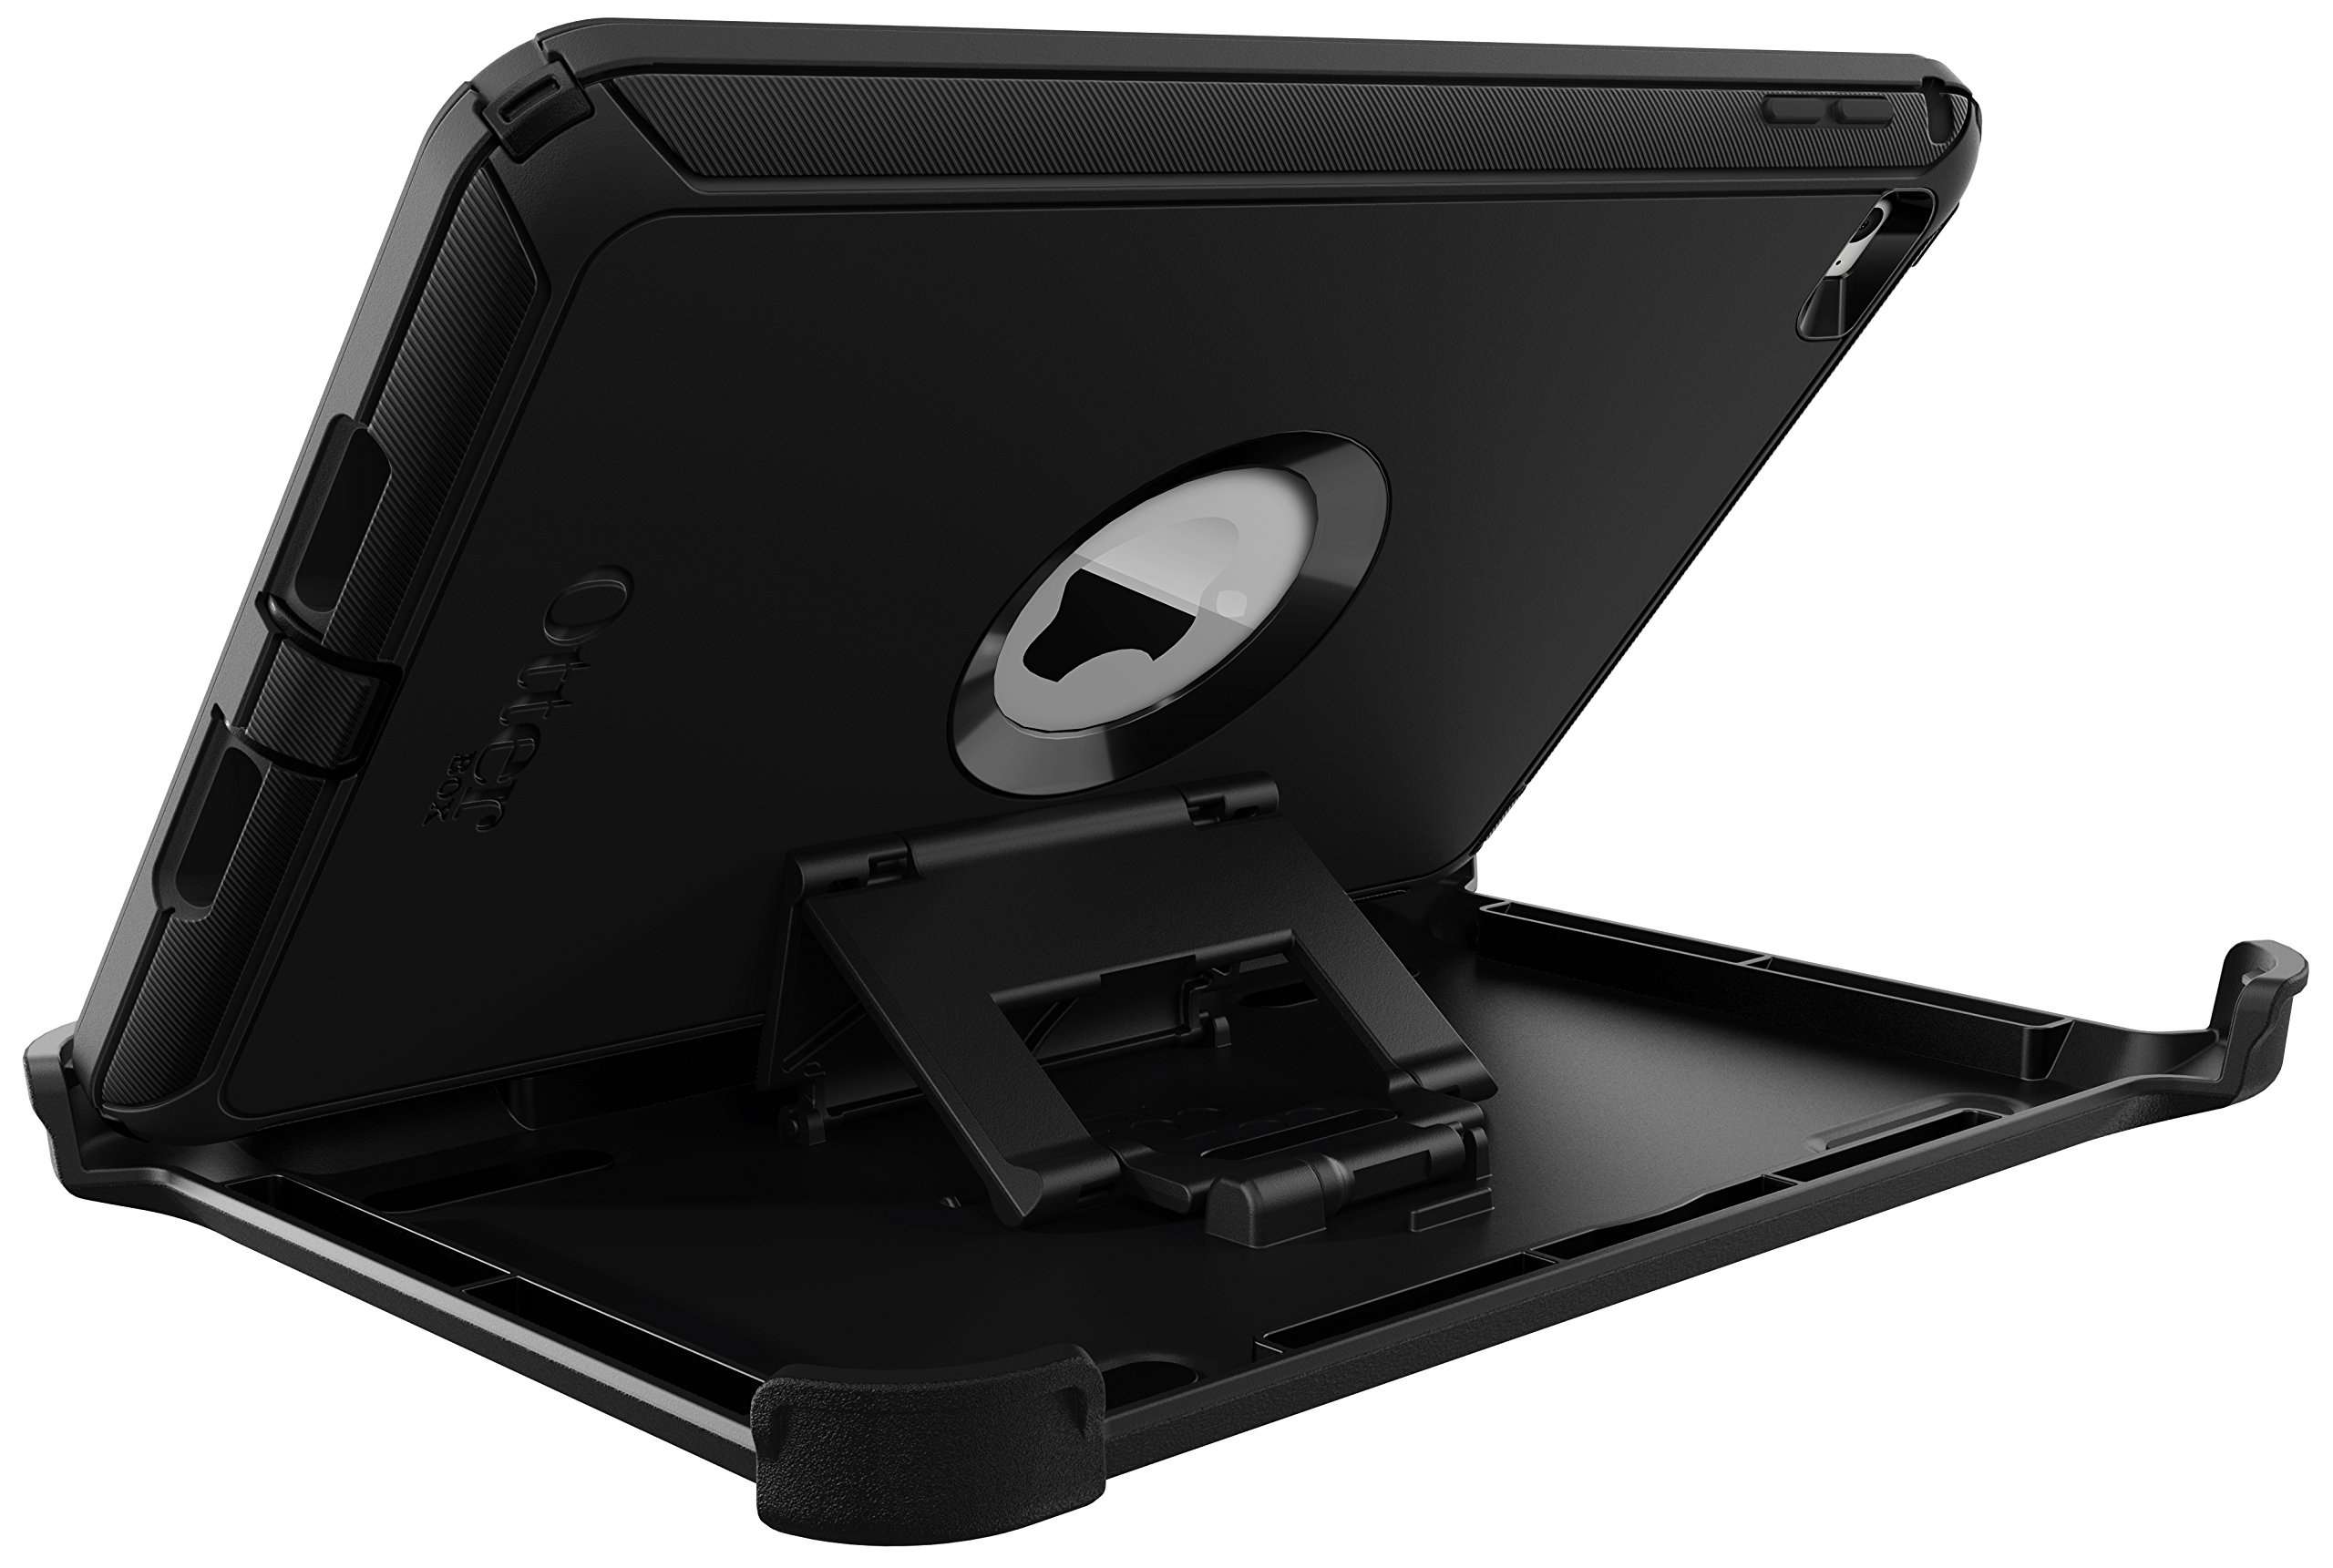 OtterBox DEFENDER SERIES Case for iPad Mini 4 (ONLY) - Retail Packaging - BLACK by OtterBox (Image #5)